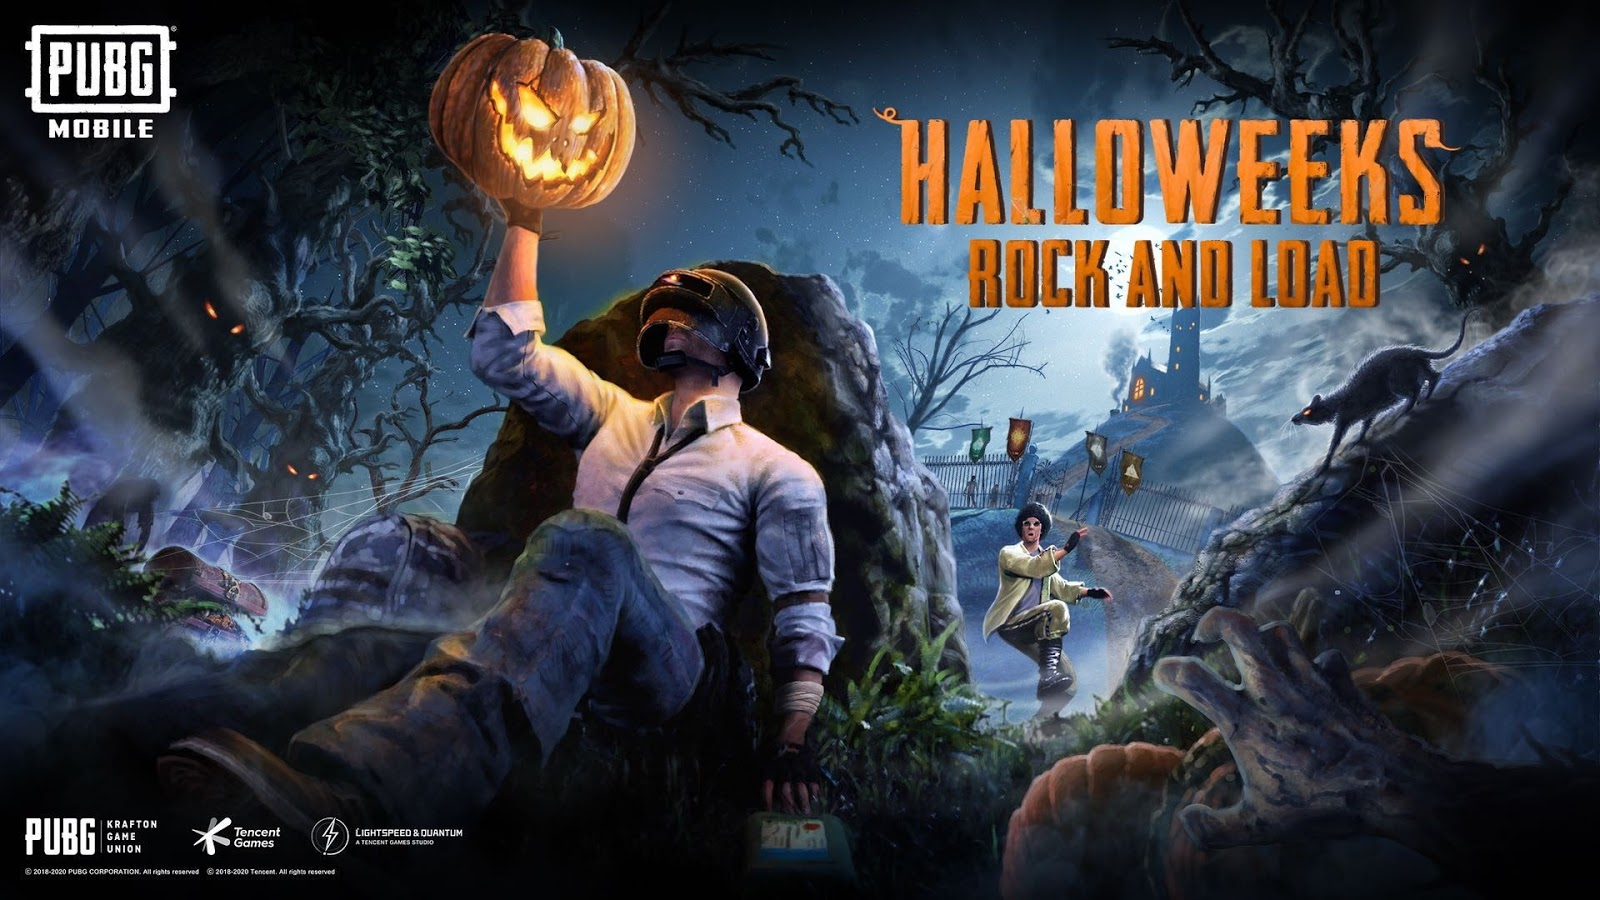 PUBG Mobile Gets Spooky Update With All-New Halloweeks Mode and Themed Outfits